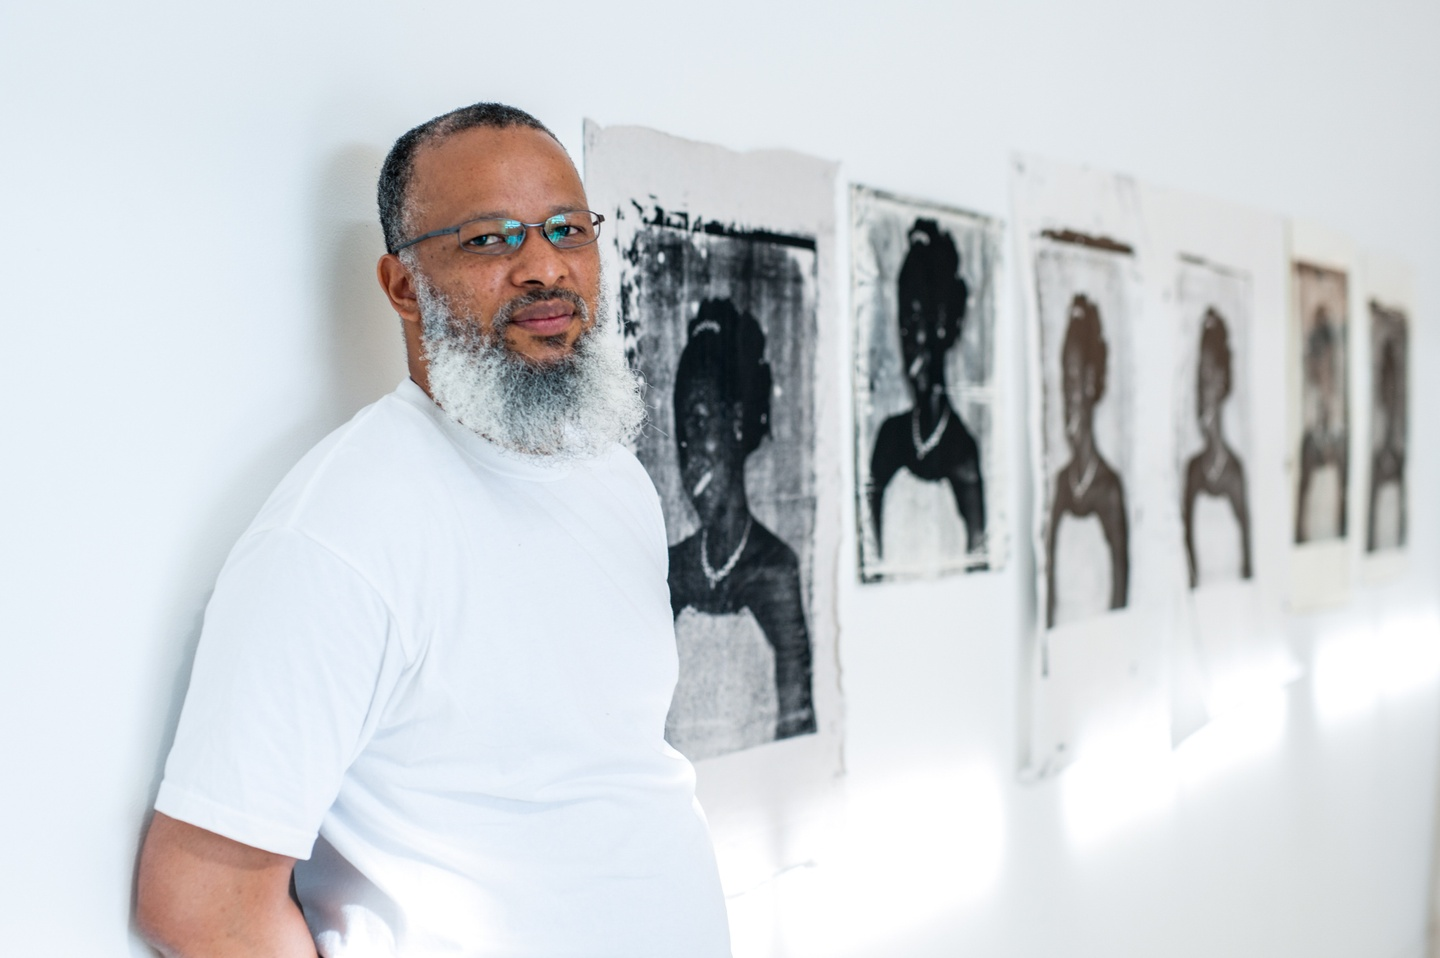 Portrait photo of Meleko Mokgosi in a gallery with framed, black-and-white artworks on white walls.